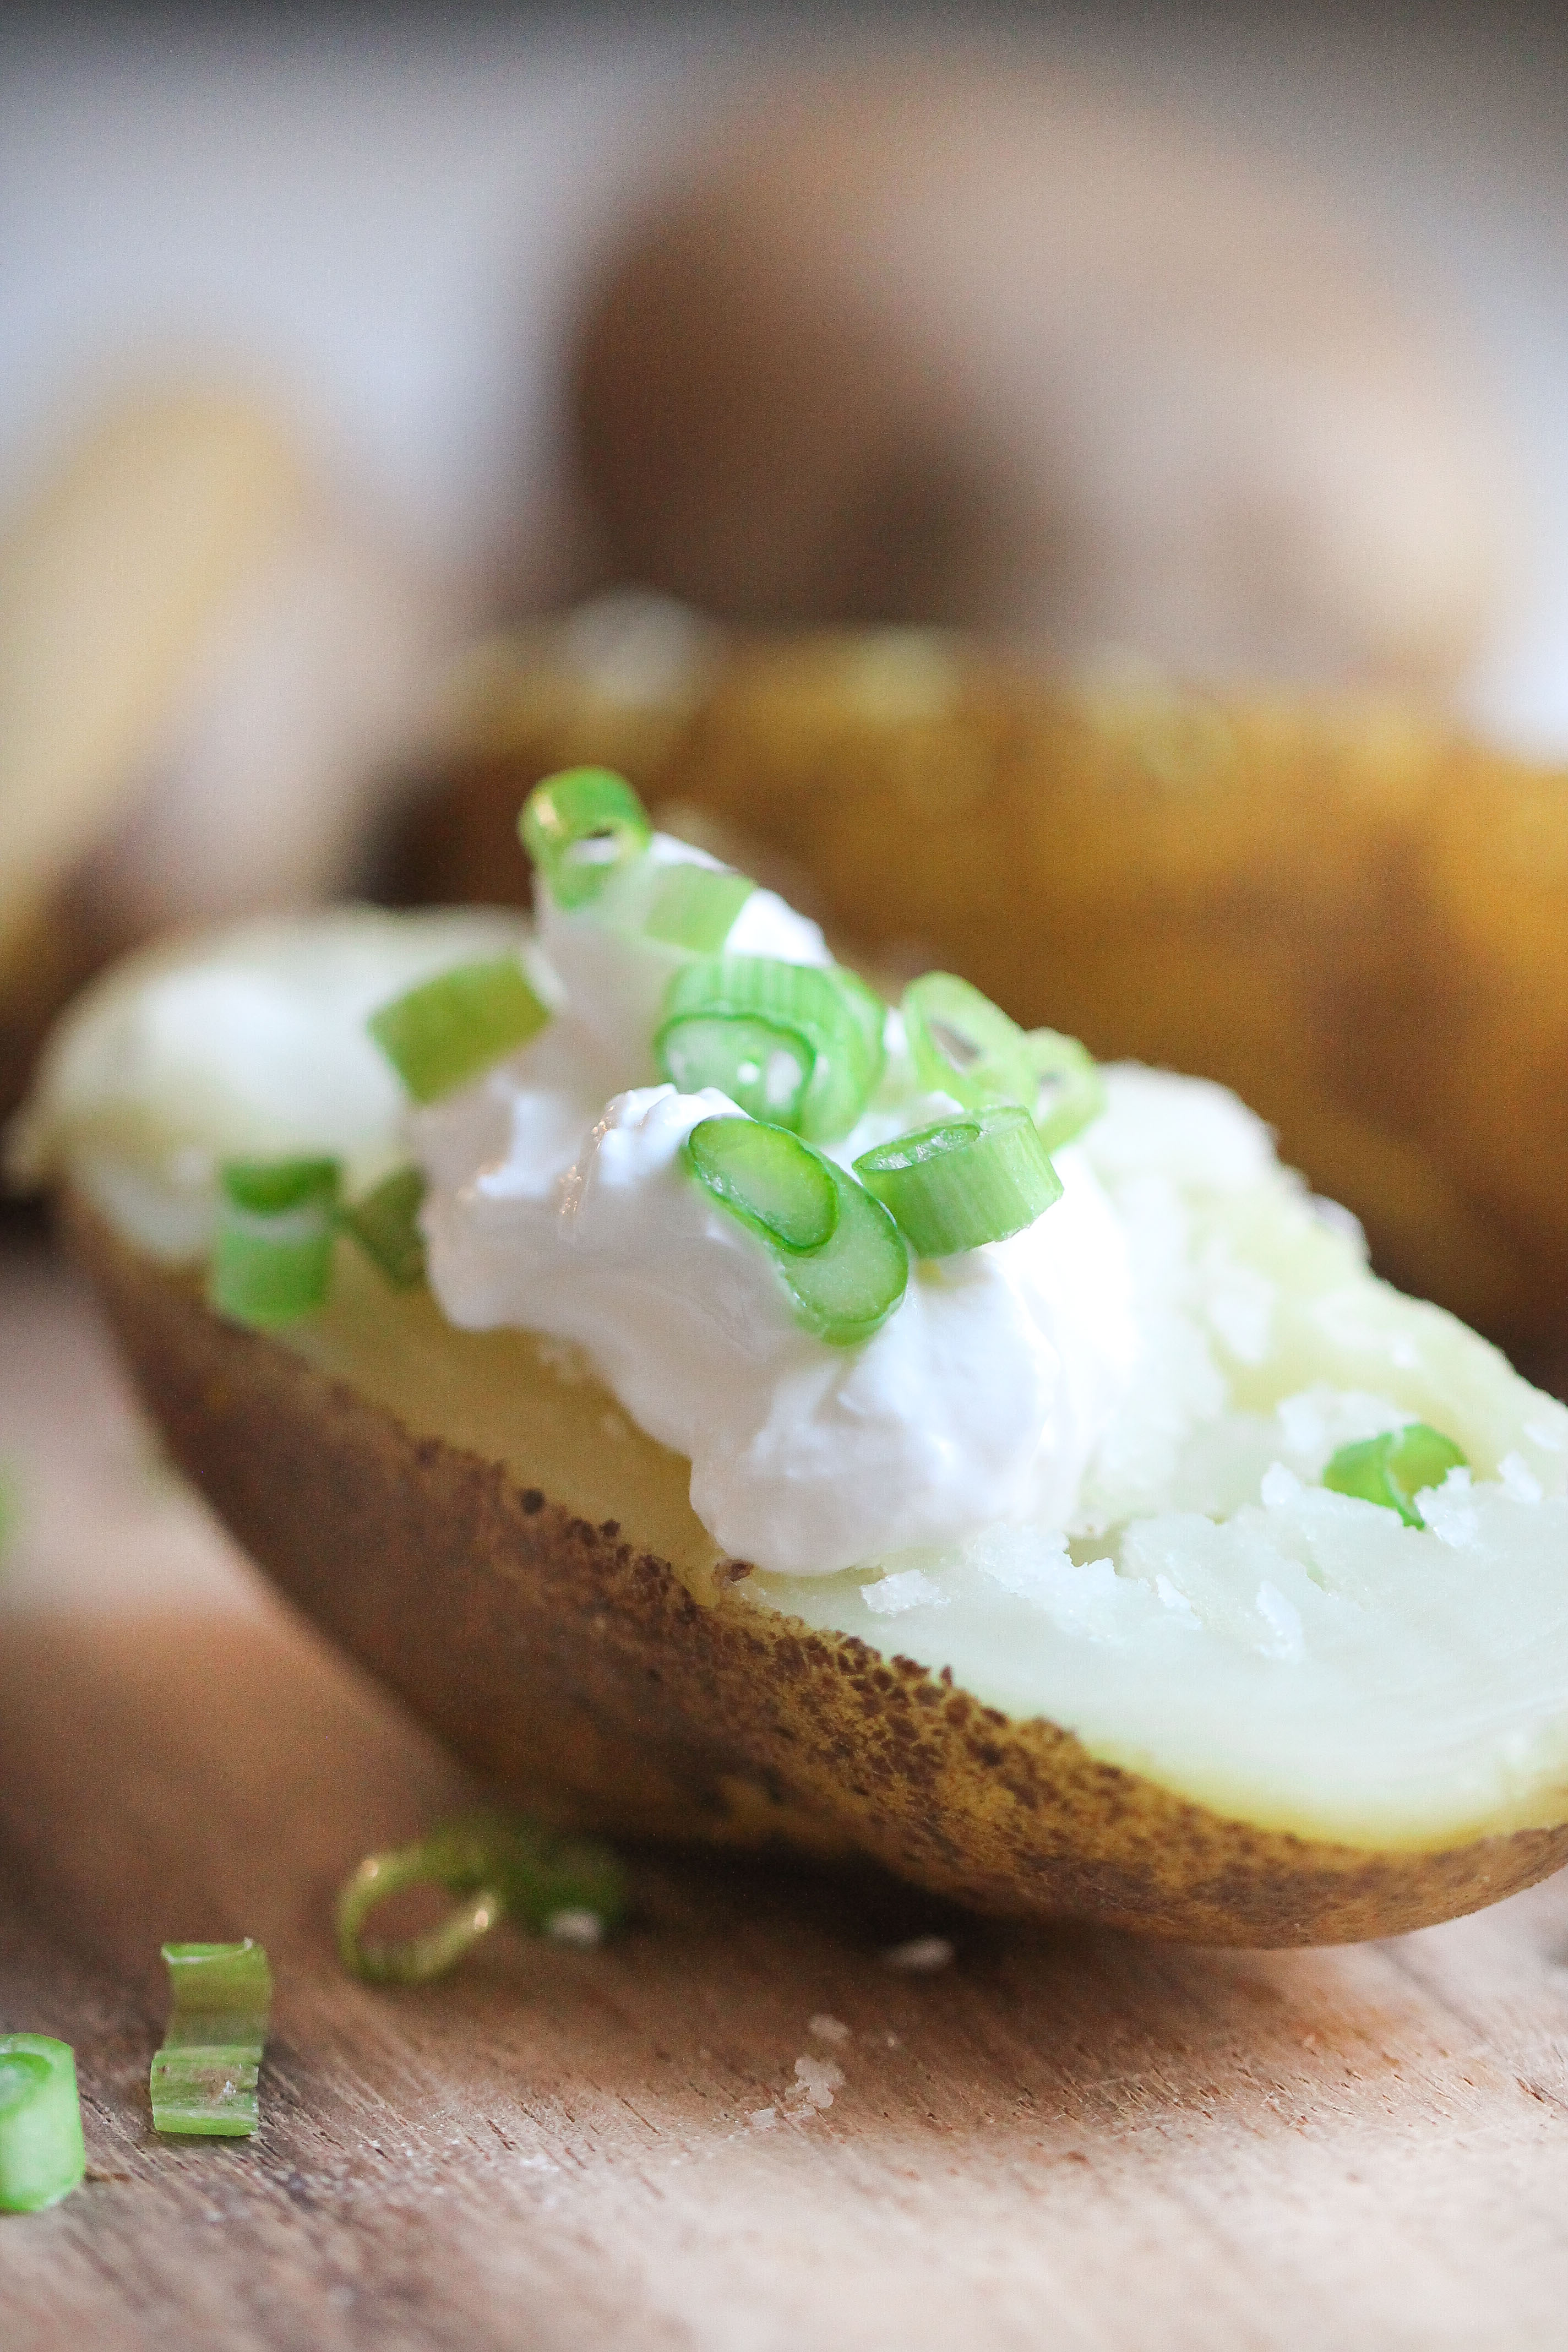 Instant Pot Baked Potatoes (No More Foil!)